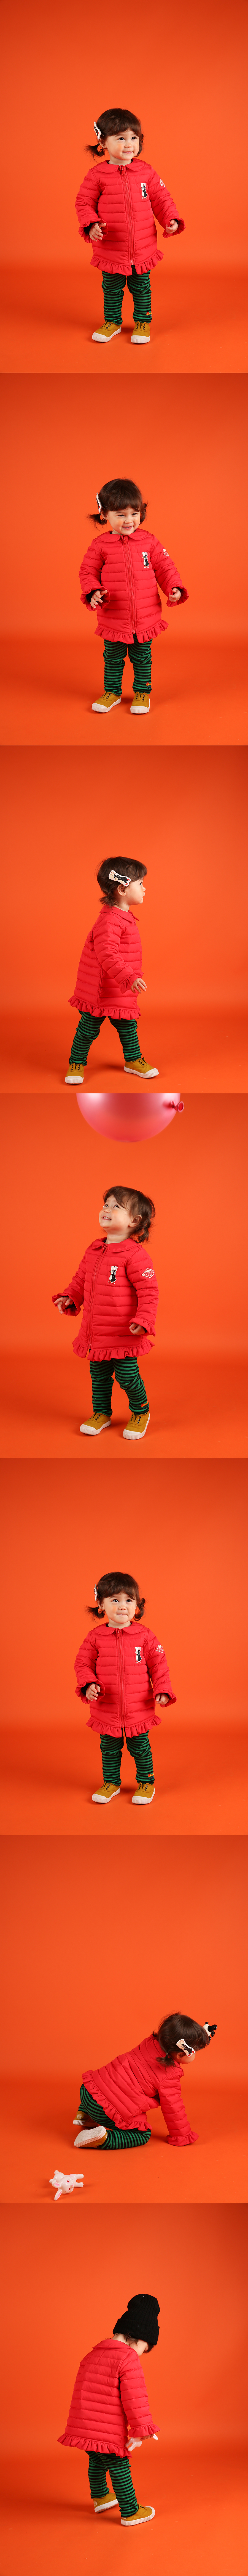 Scarlet baby quilted ruffle down jumper 상세 이미지